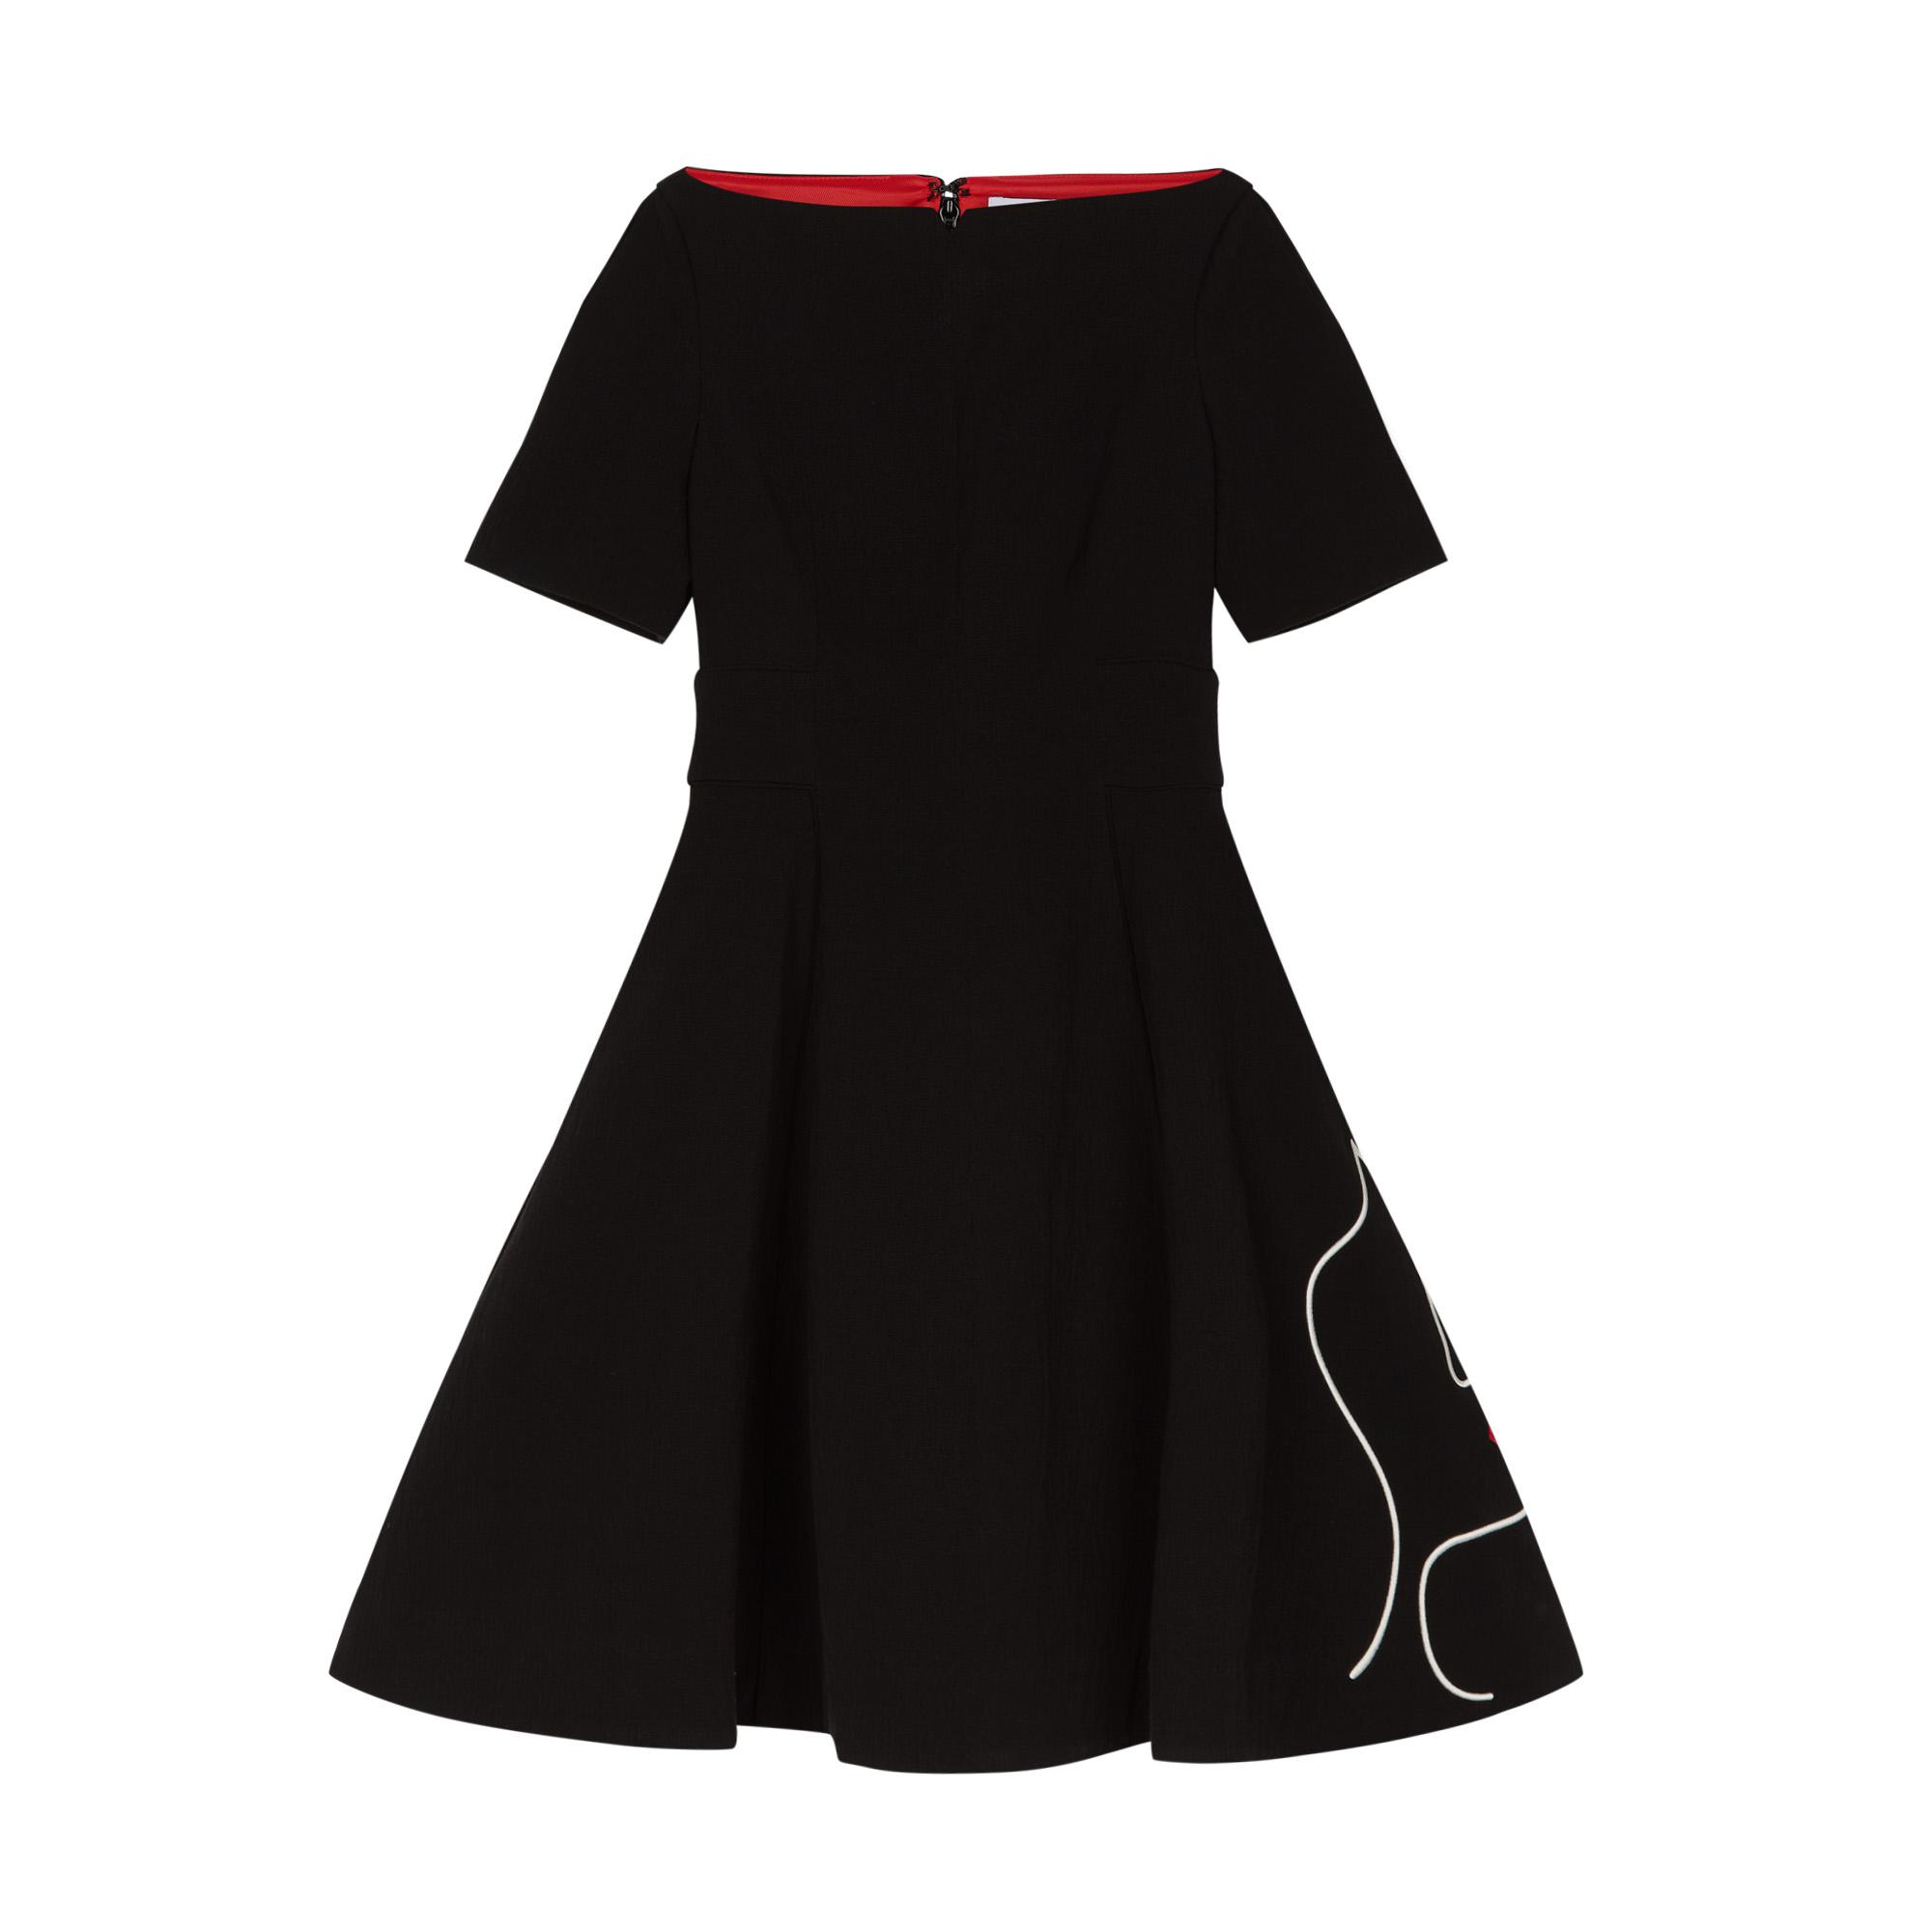 Lulu Guinness Synthetic Kissing Lips Dara Dress In Black